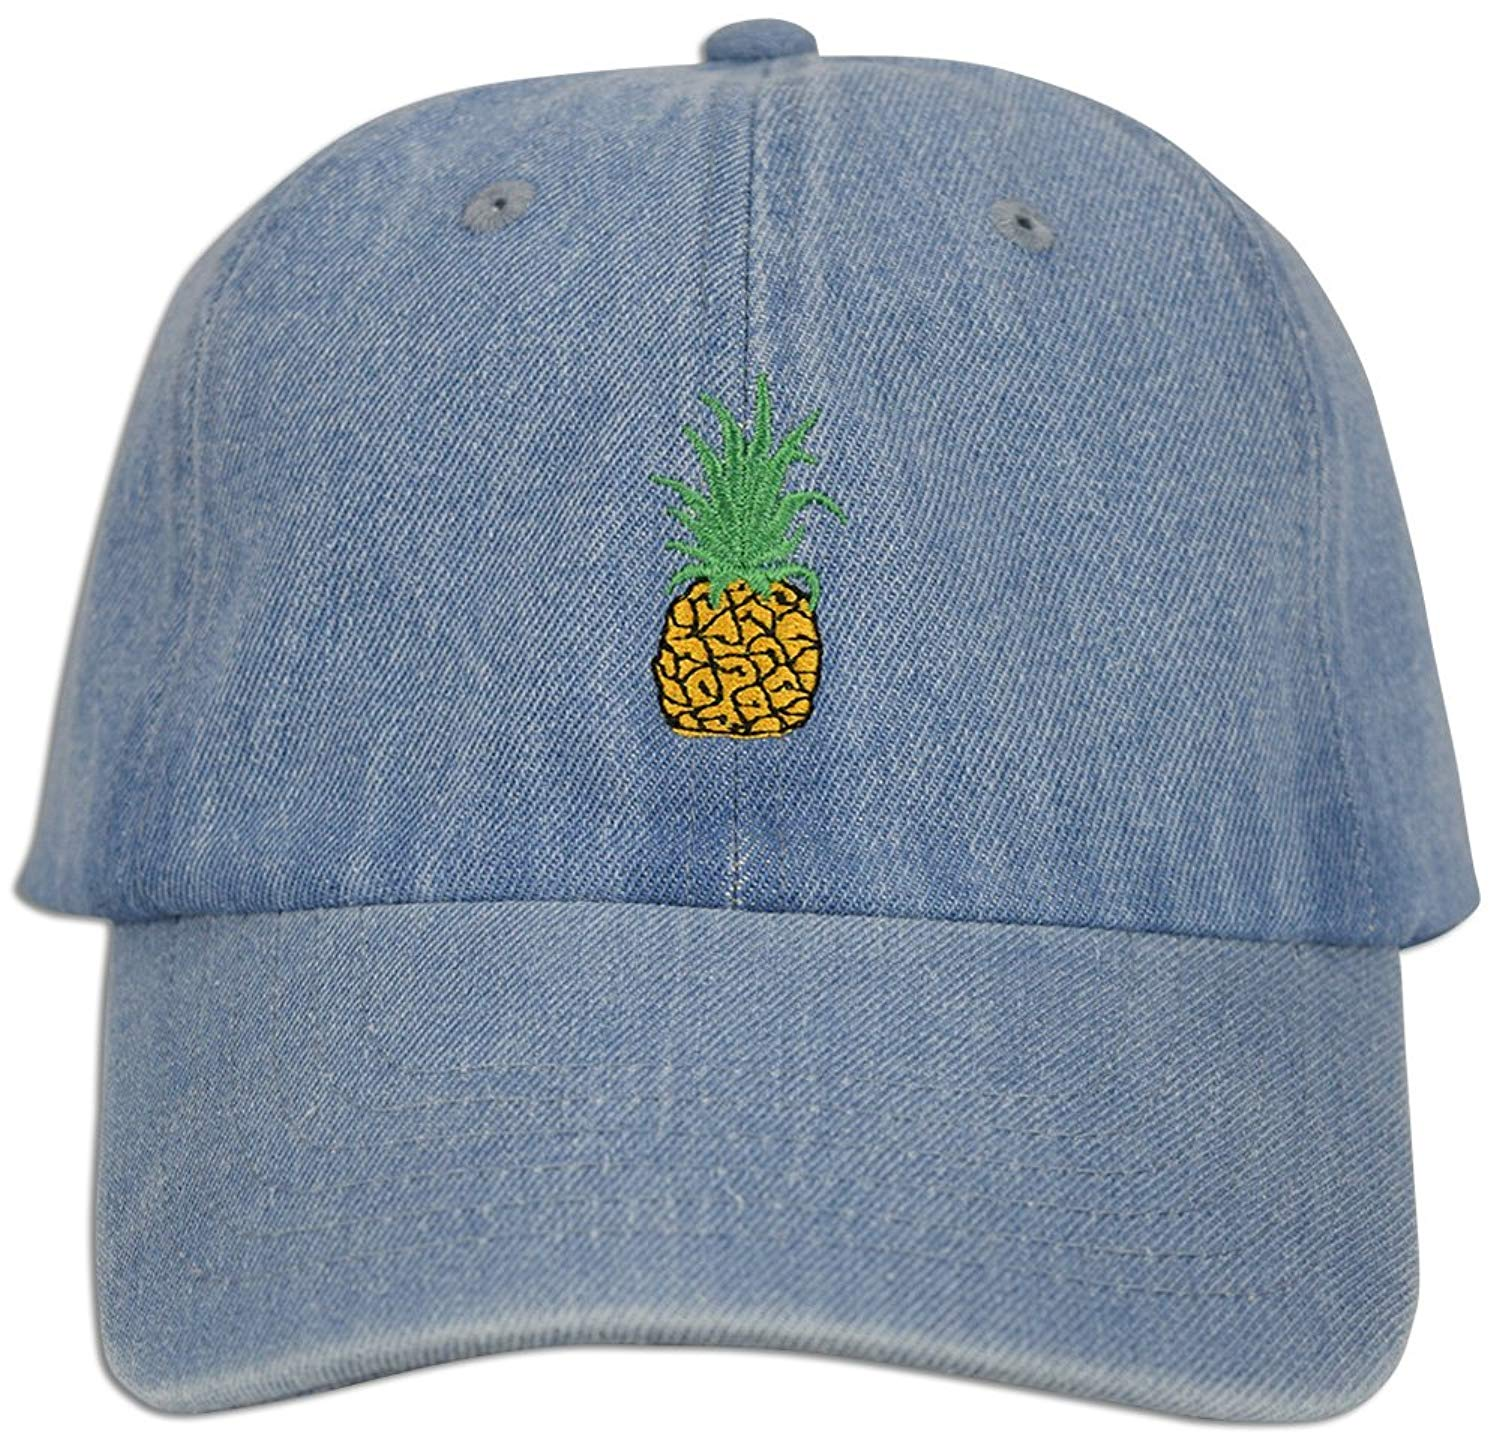 Pineapple Embroidery Dad Hat Baseball Cap Polo Style Unconstructed